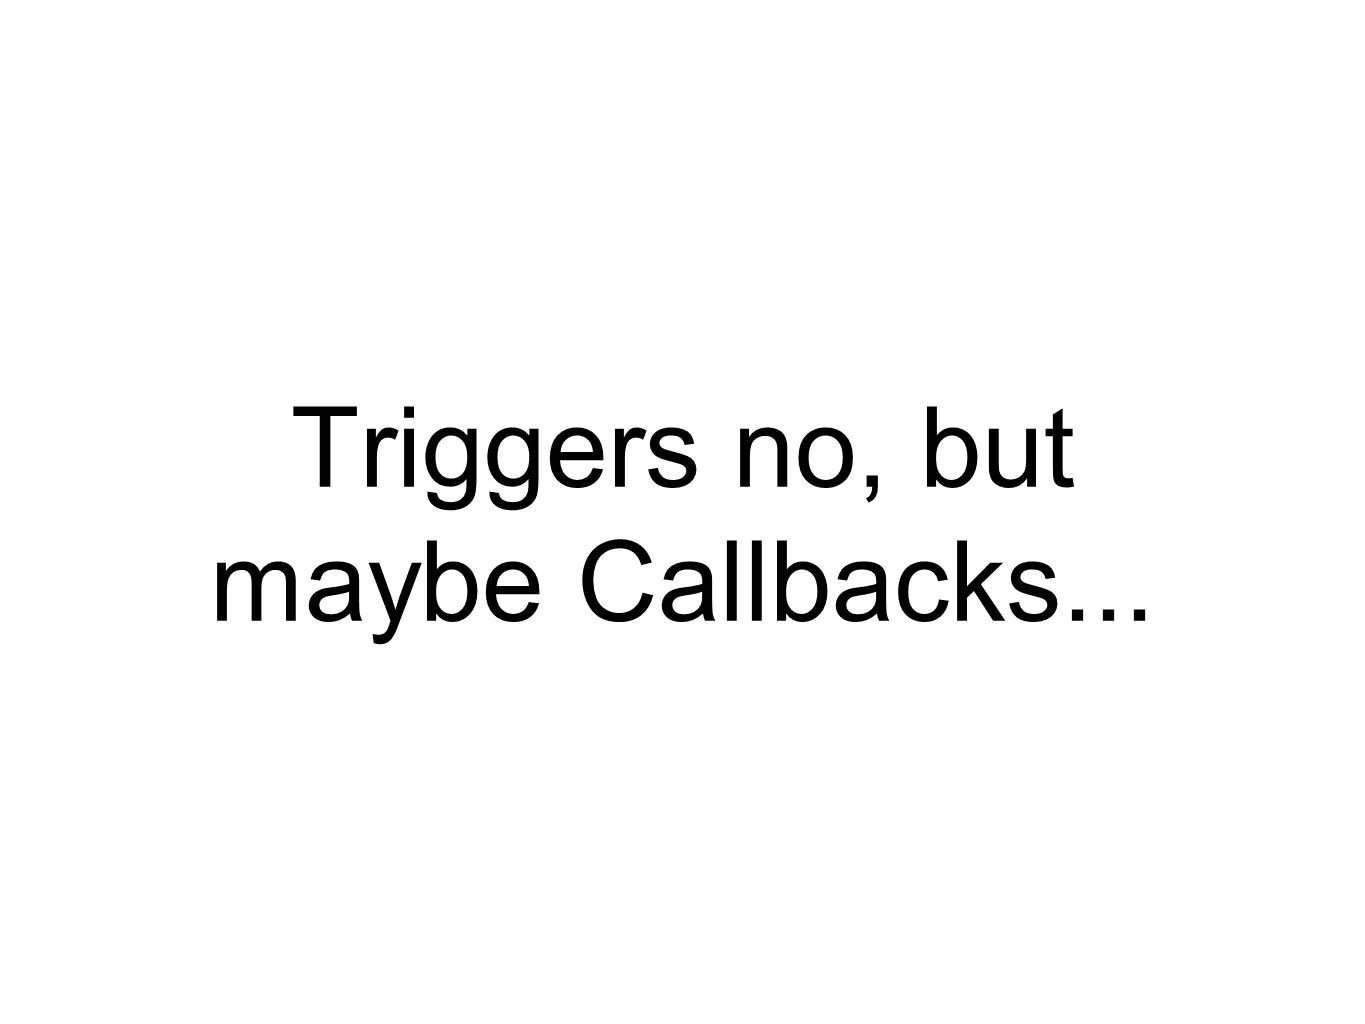 Triggers no, but maybe Callbacks...